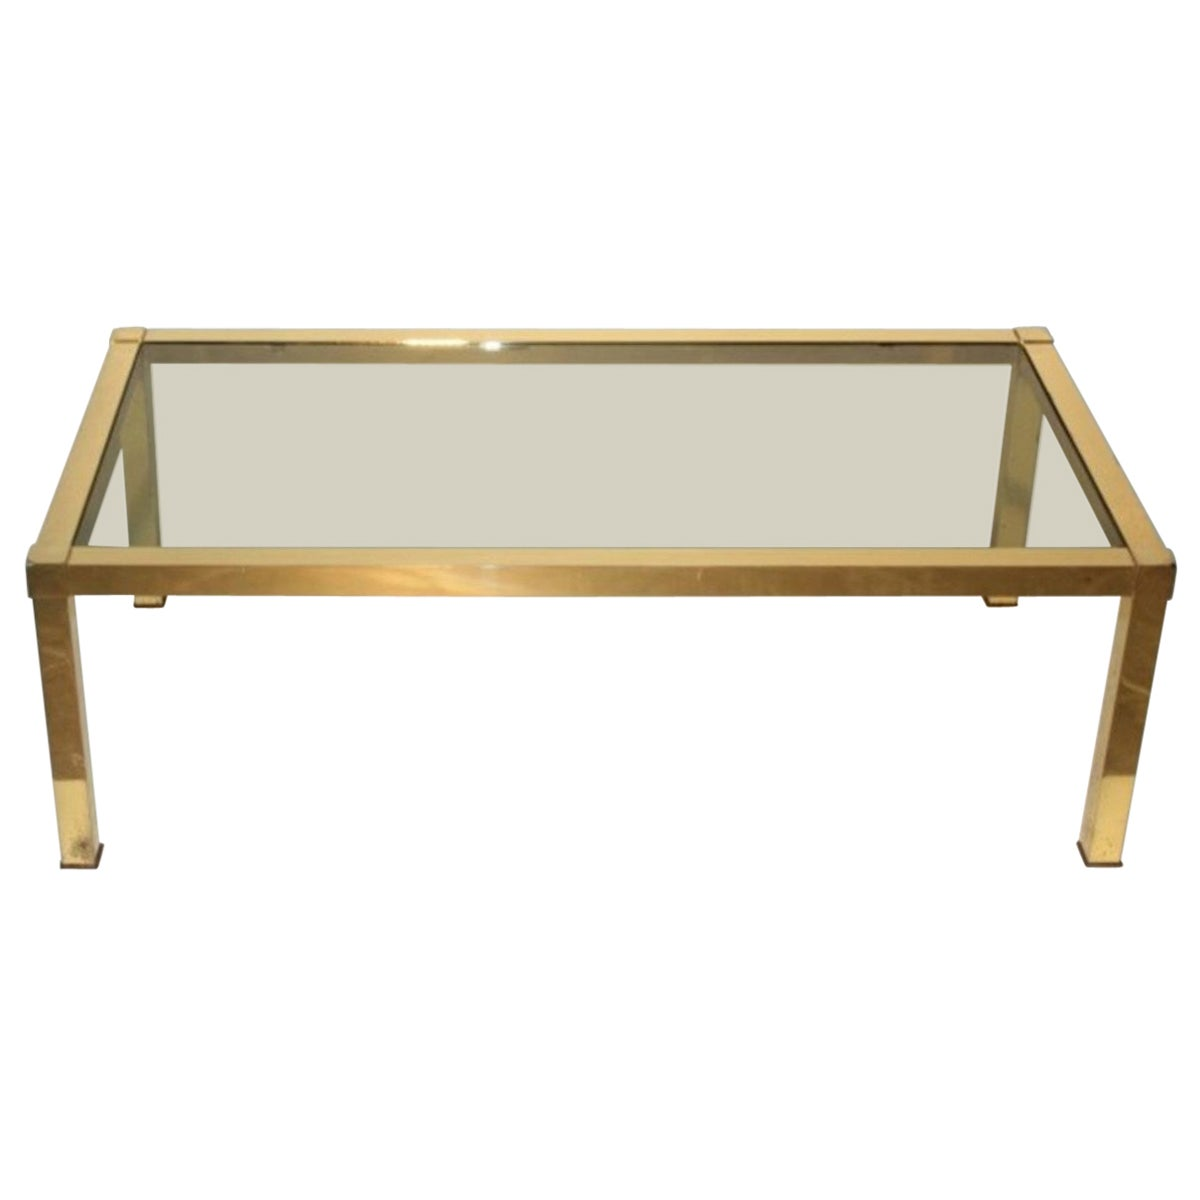 Low Gold Table 1970s Solid Brass Italian Design